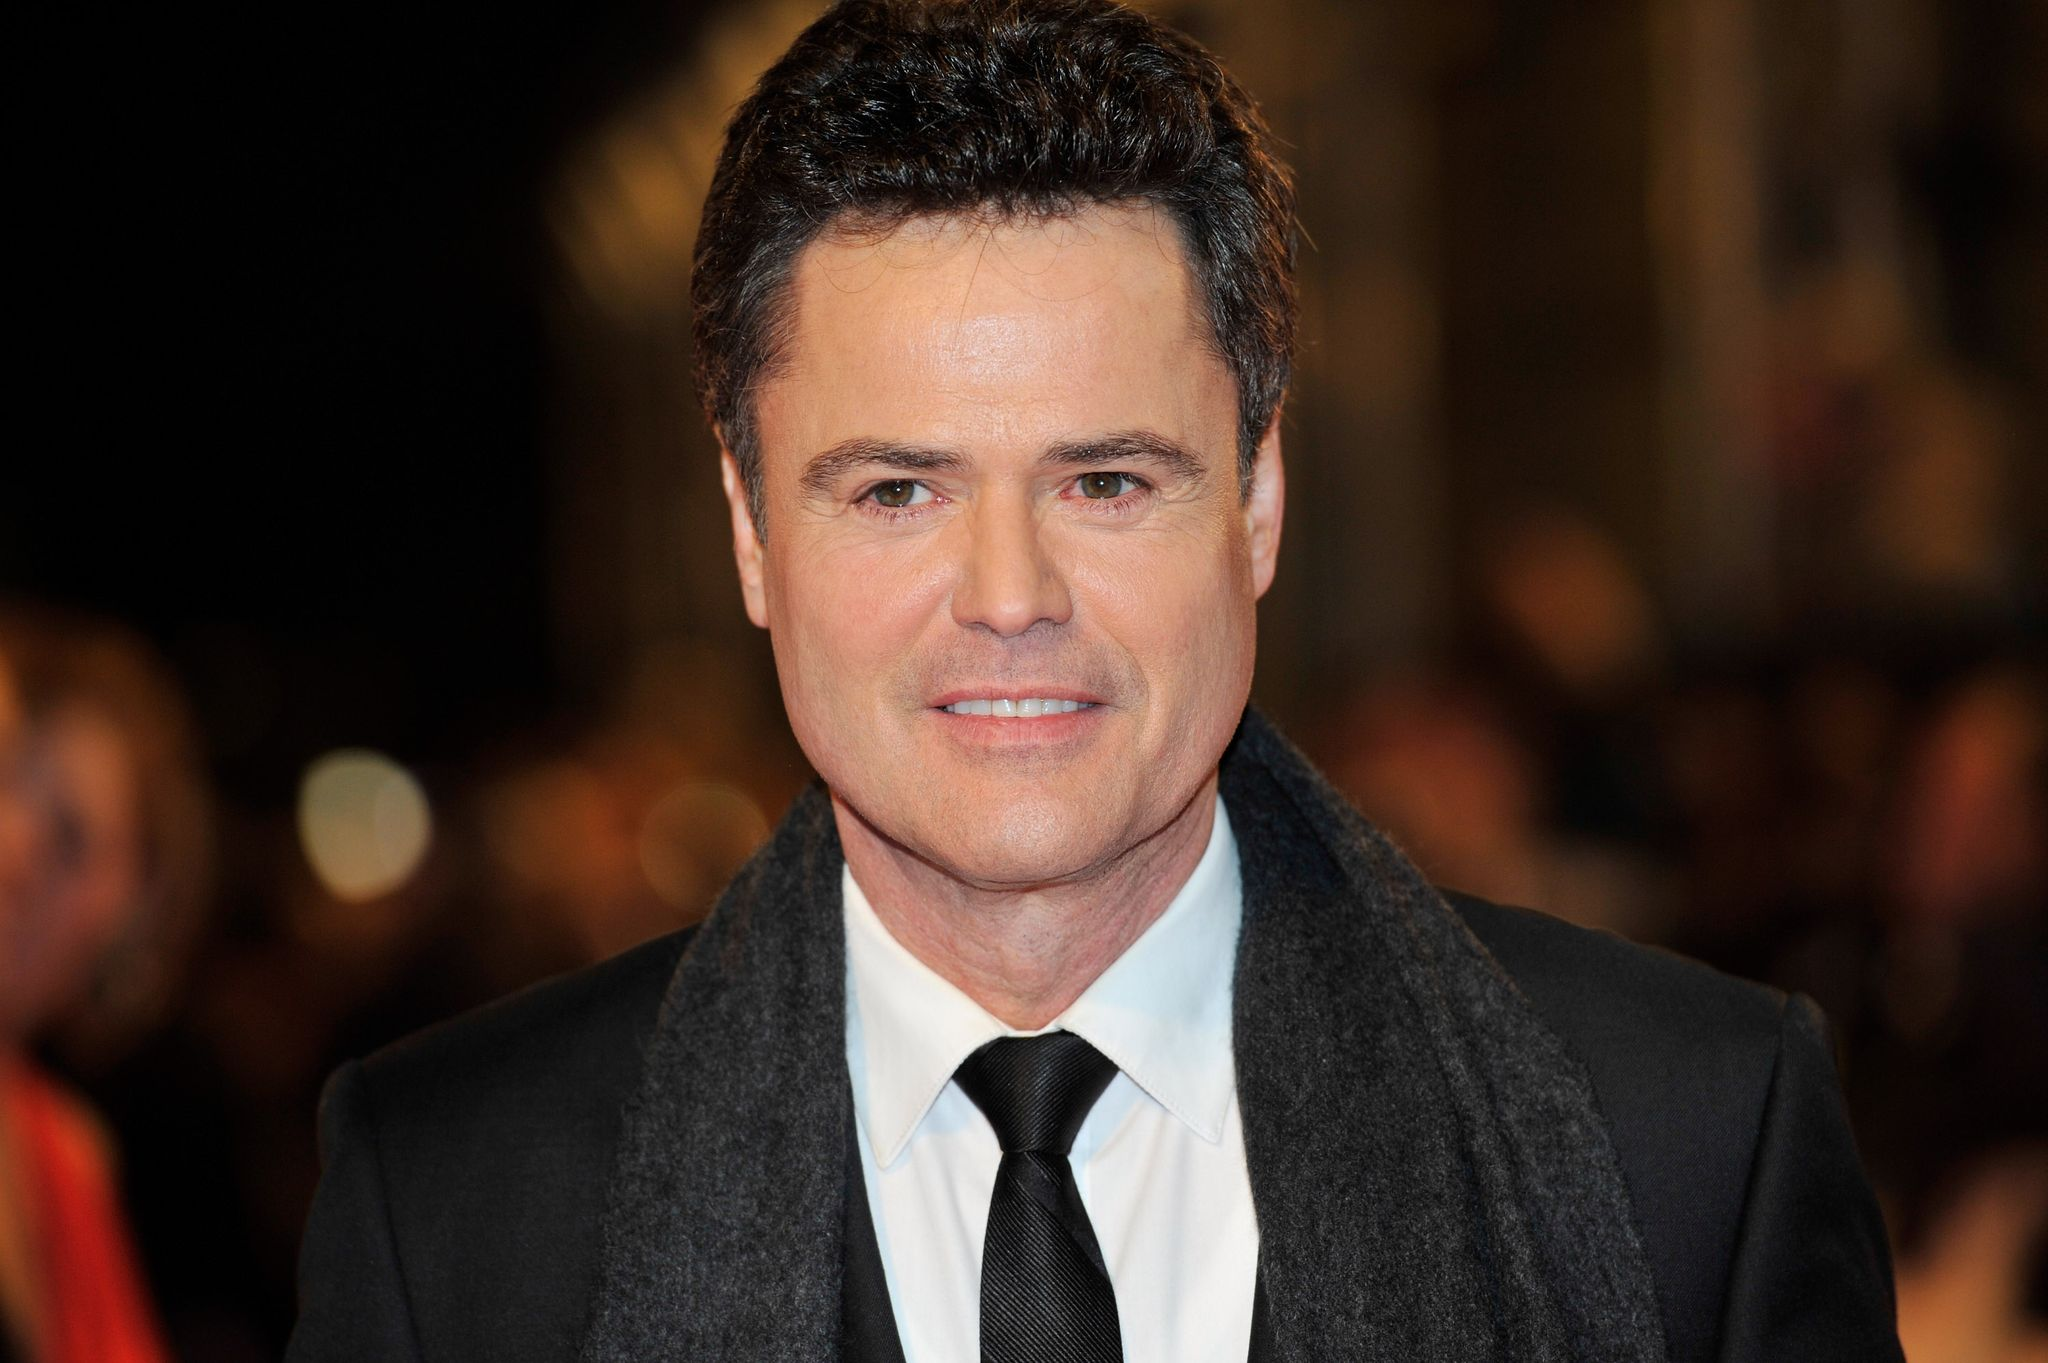 Donny Osmond at the the National Television Awards at 02 Arena on January 23, 2013 | Photo: Getty Images